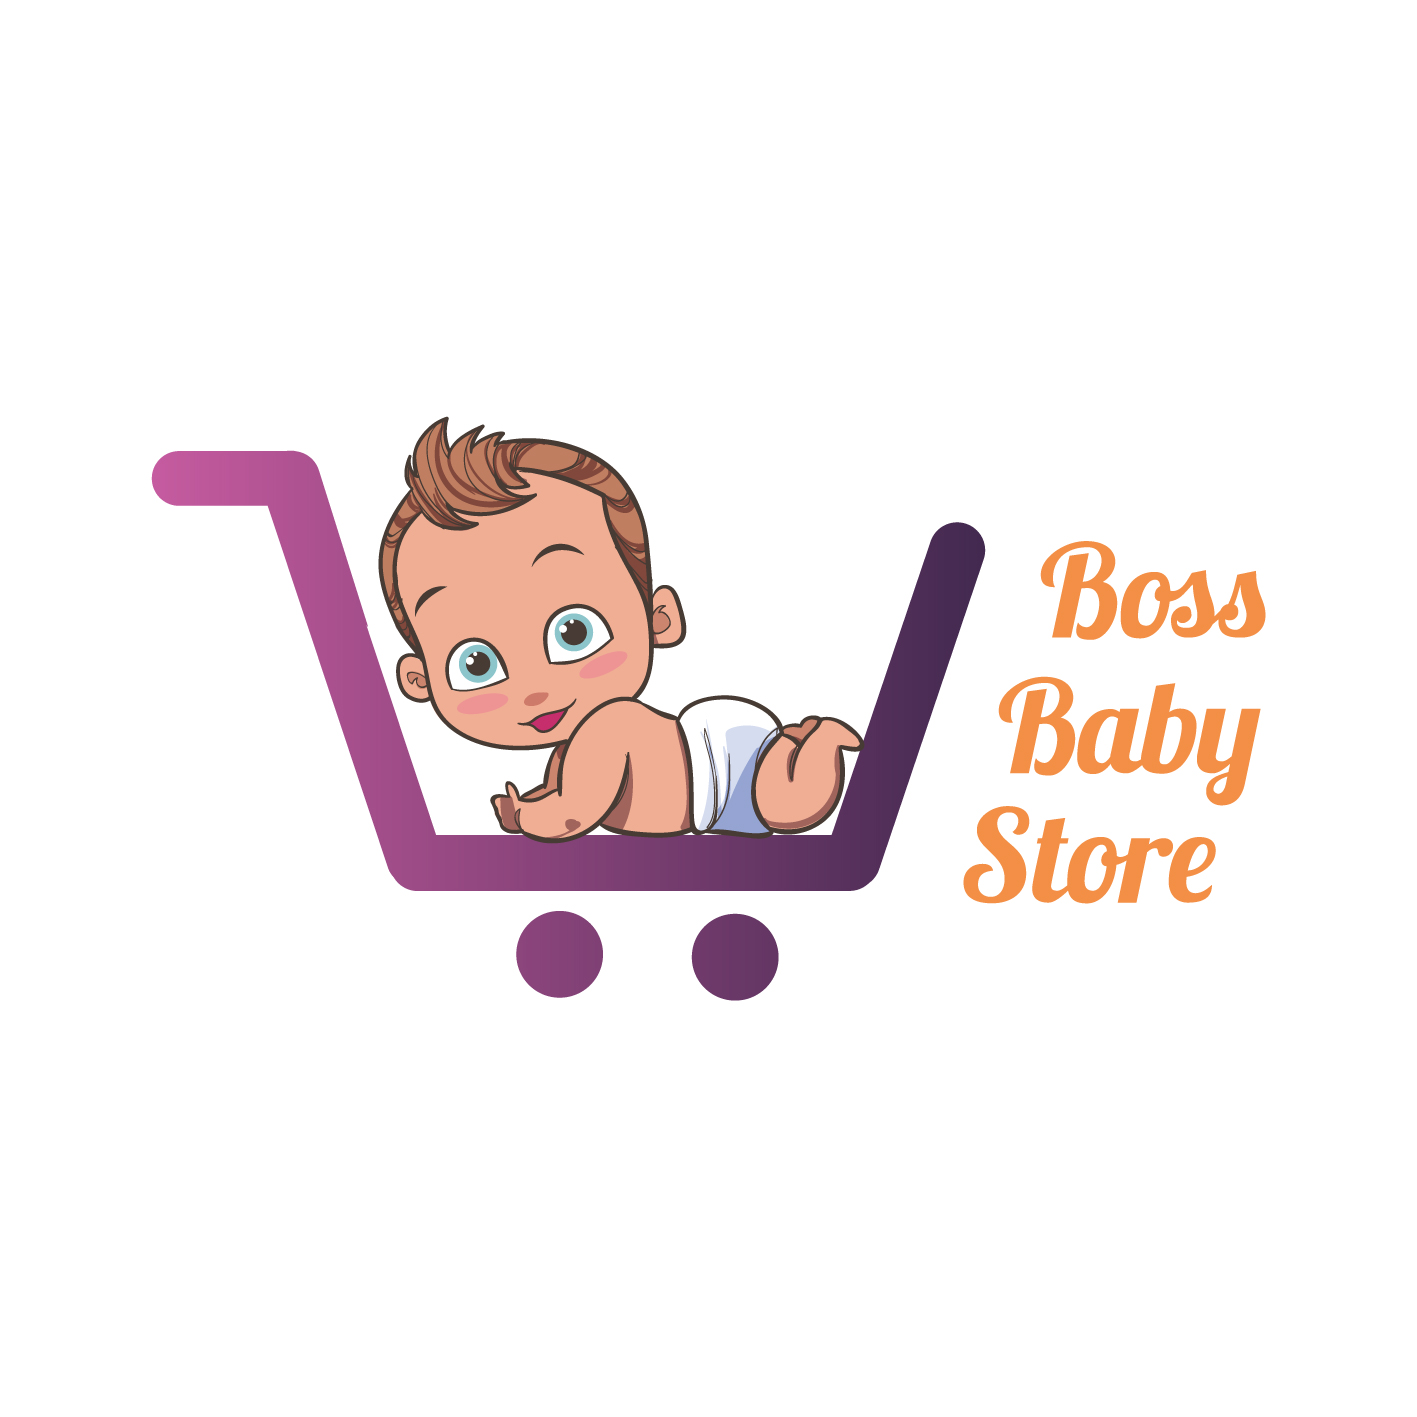 Why New Moms Need the Boss Baby Store